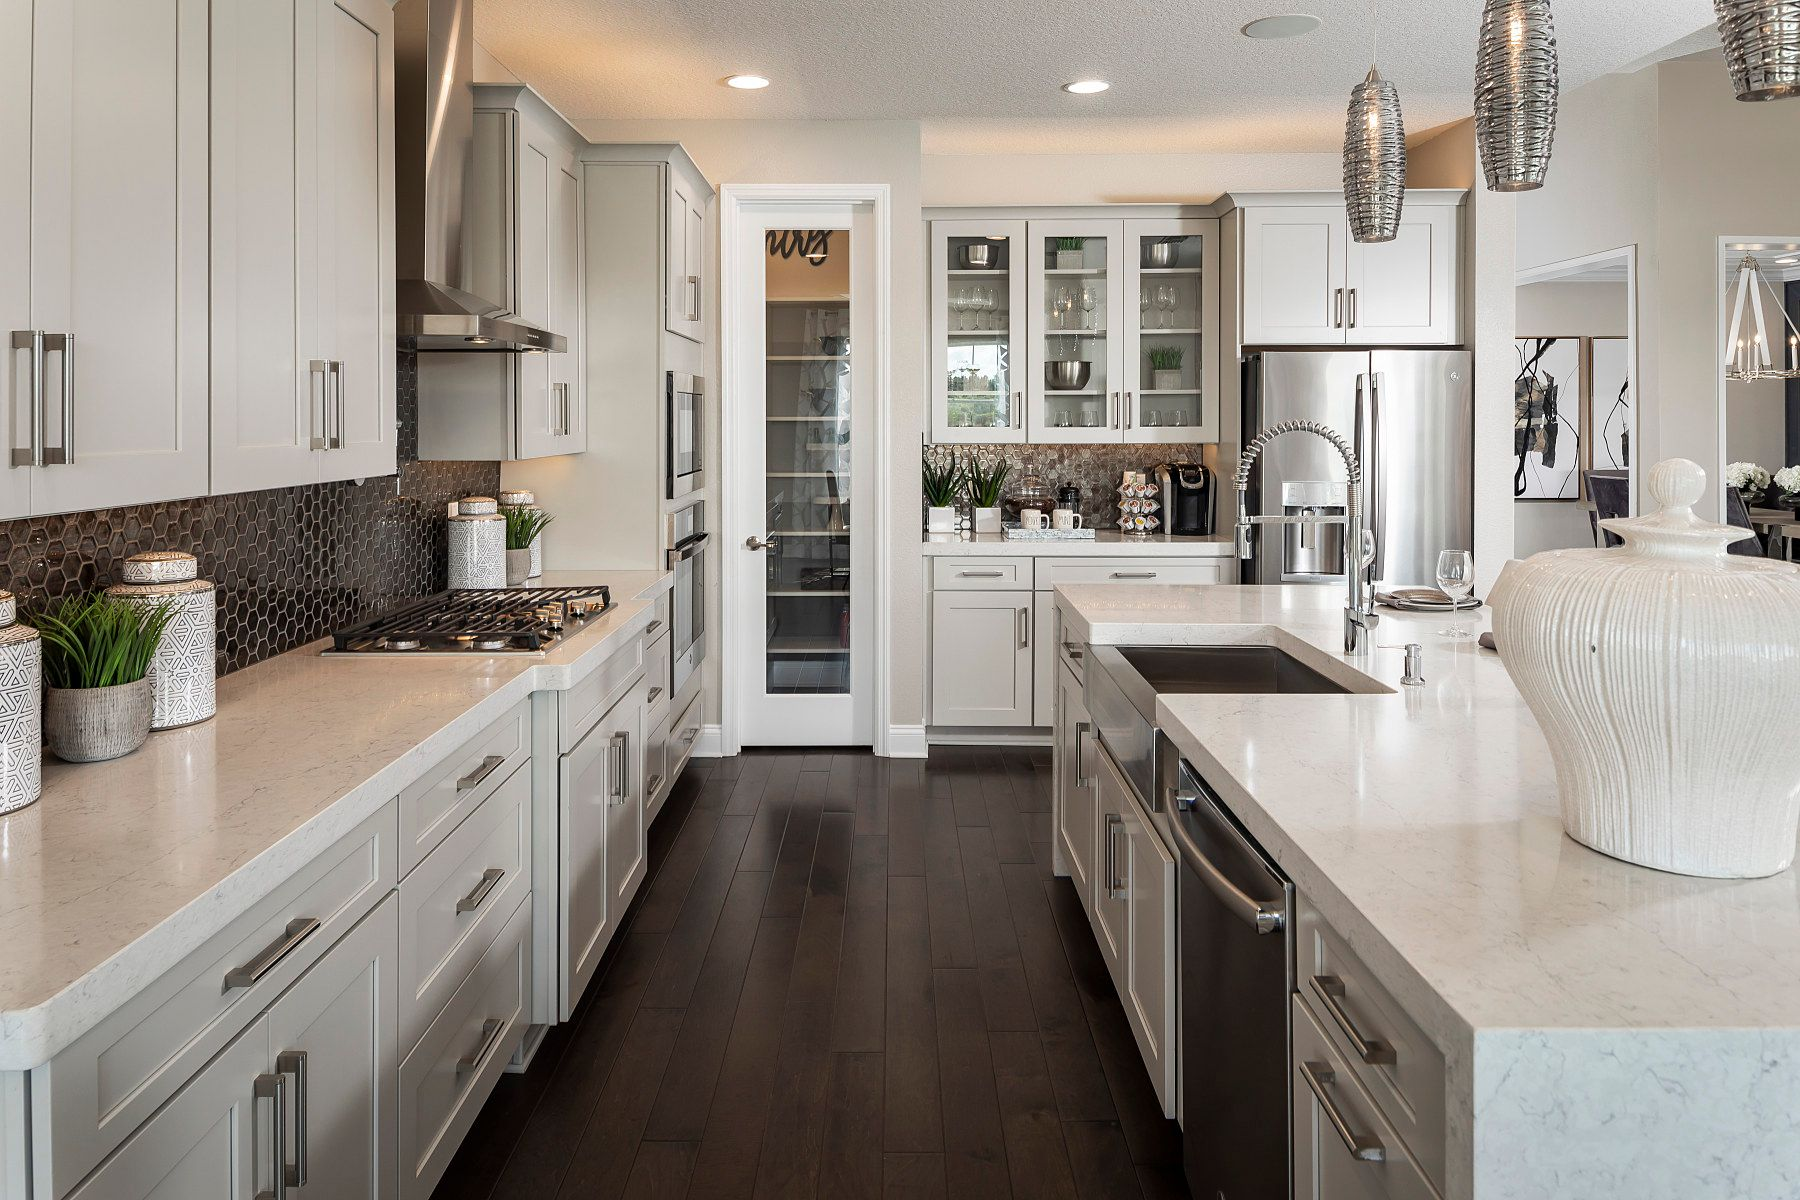 Kitchen featured in the Serenity By M/I Homes in Orlando, FL